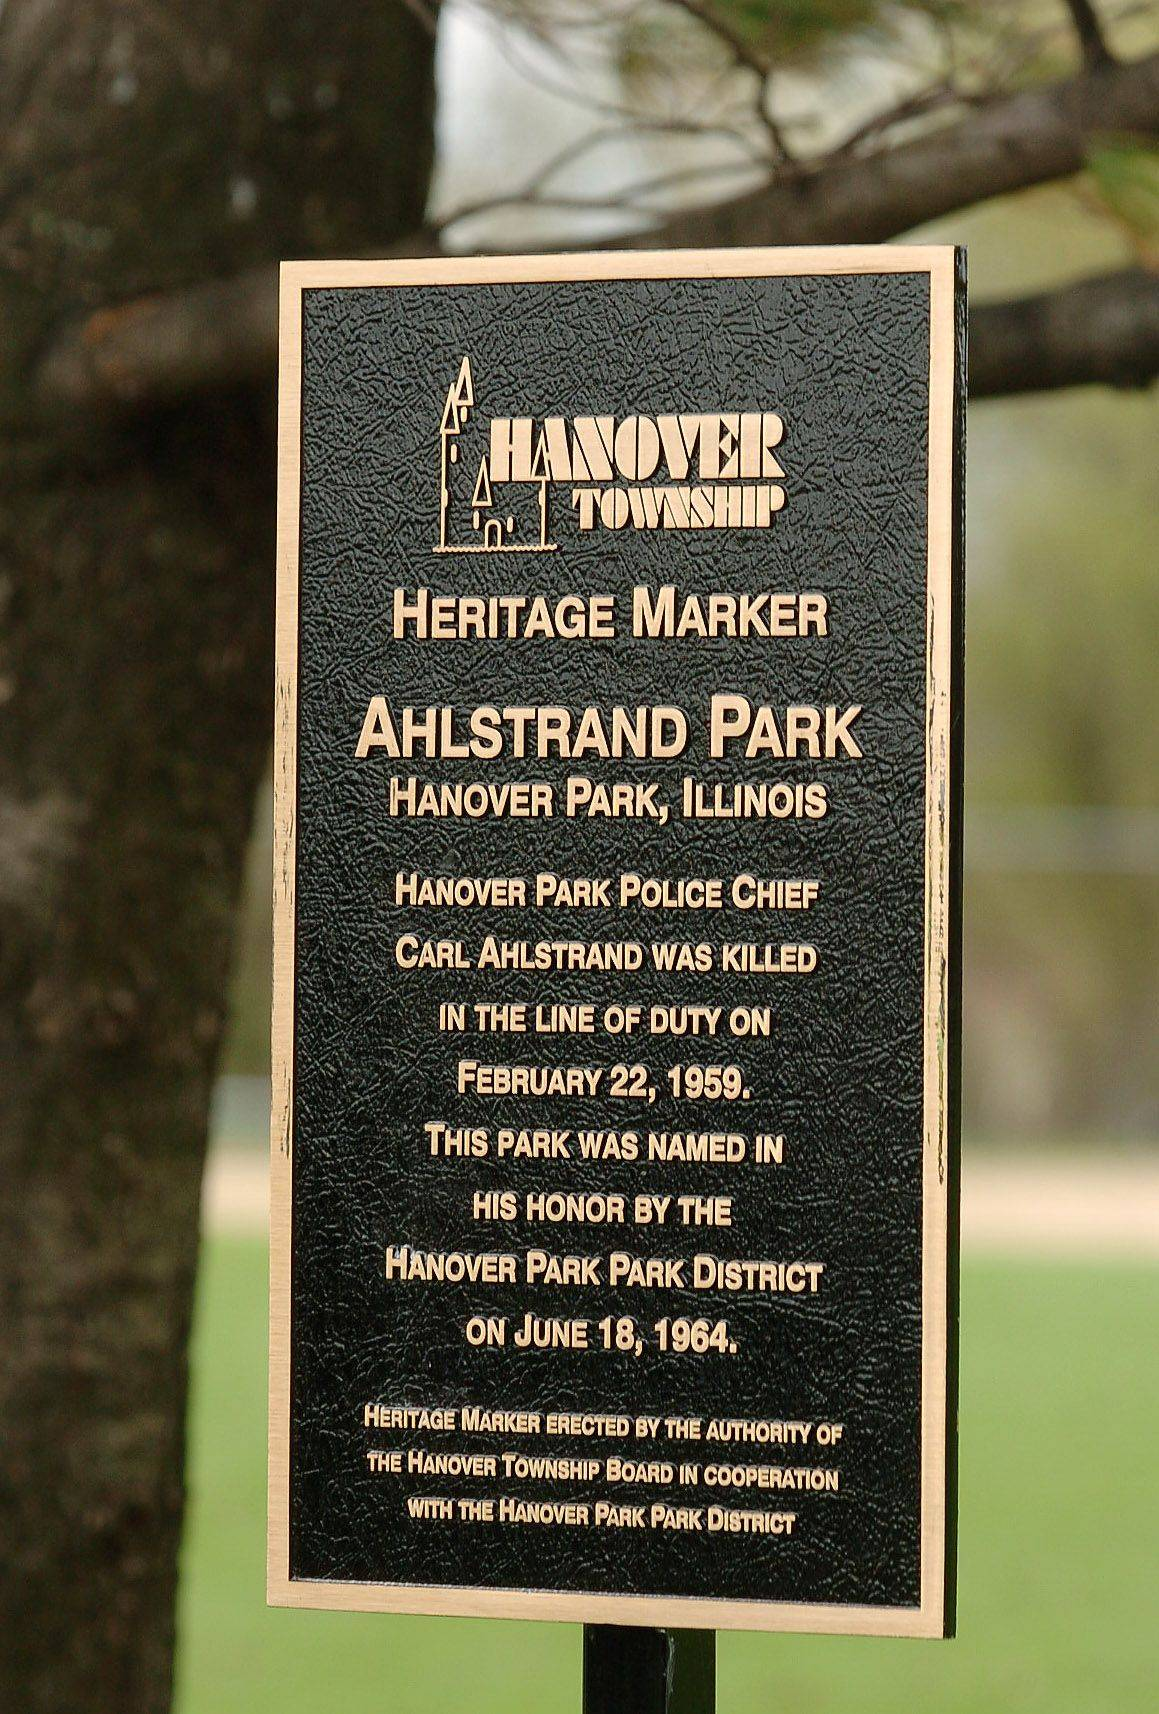 Hanover Park and Hanover Township officials dedicated a marker at Ahlstrand Park commemorating the park's namesake, Carl Ahlstrand, former Hanover Park police chief who was killed in the line of duty in 1959.